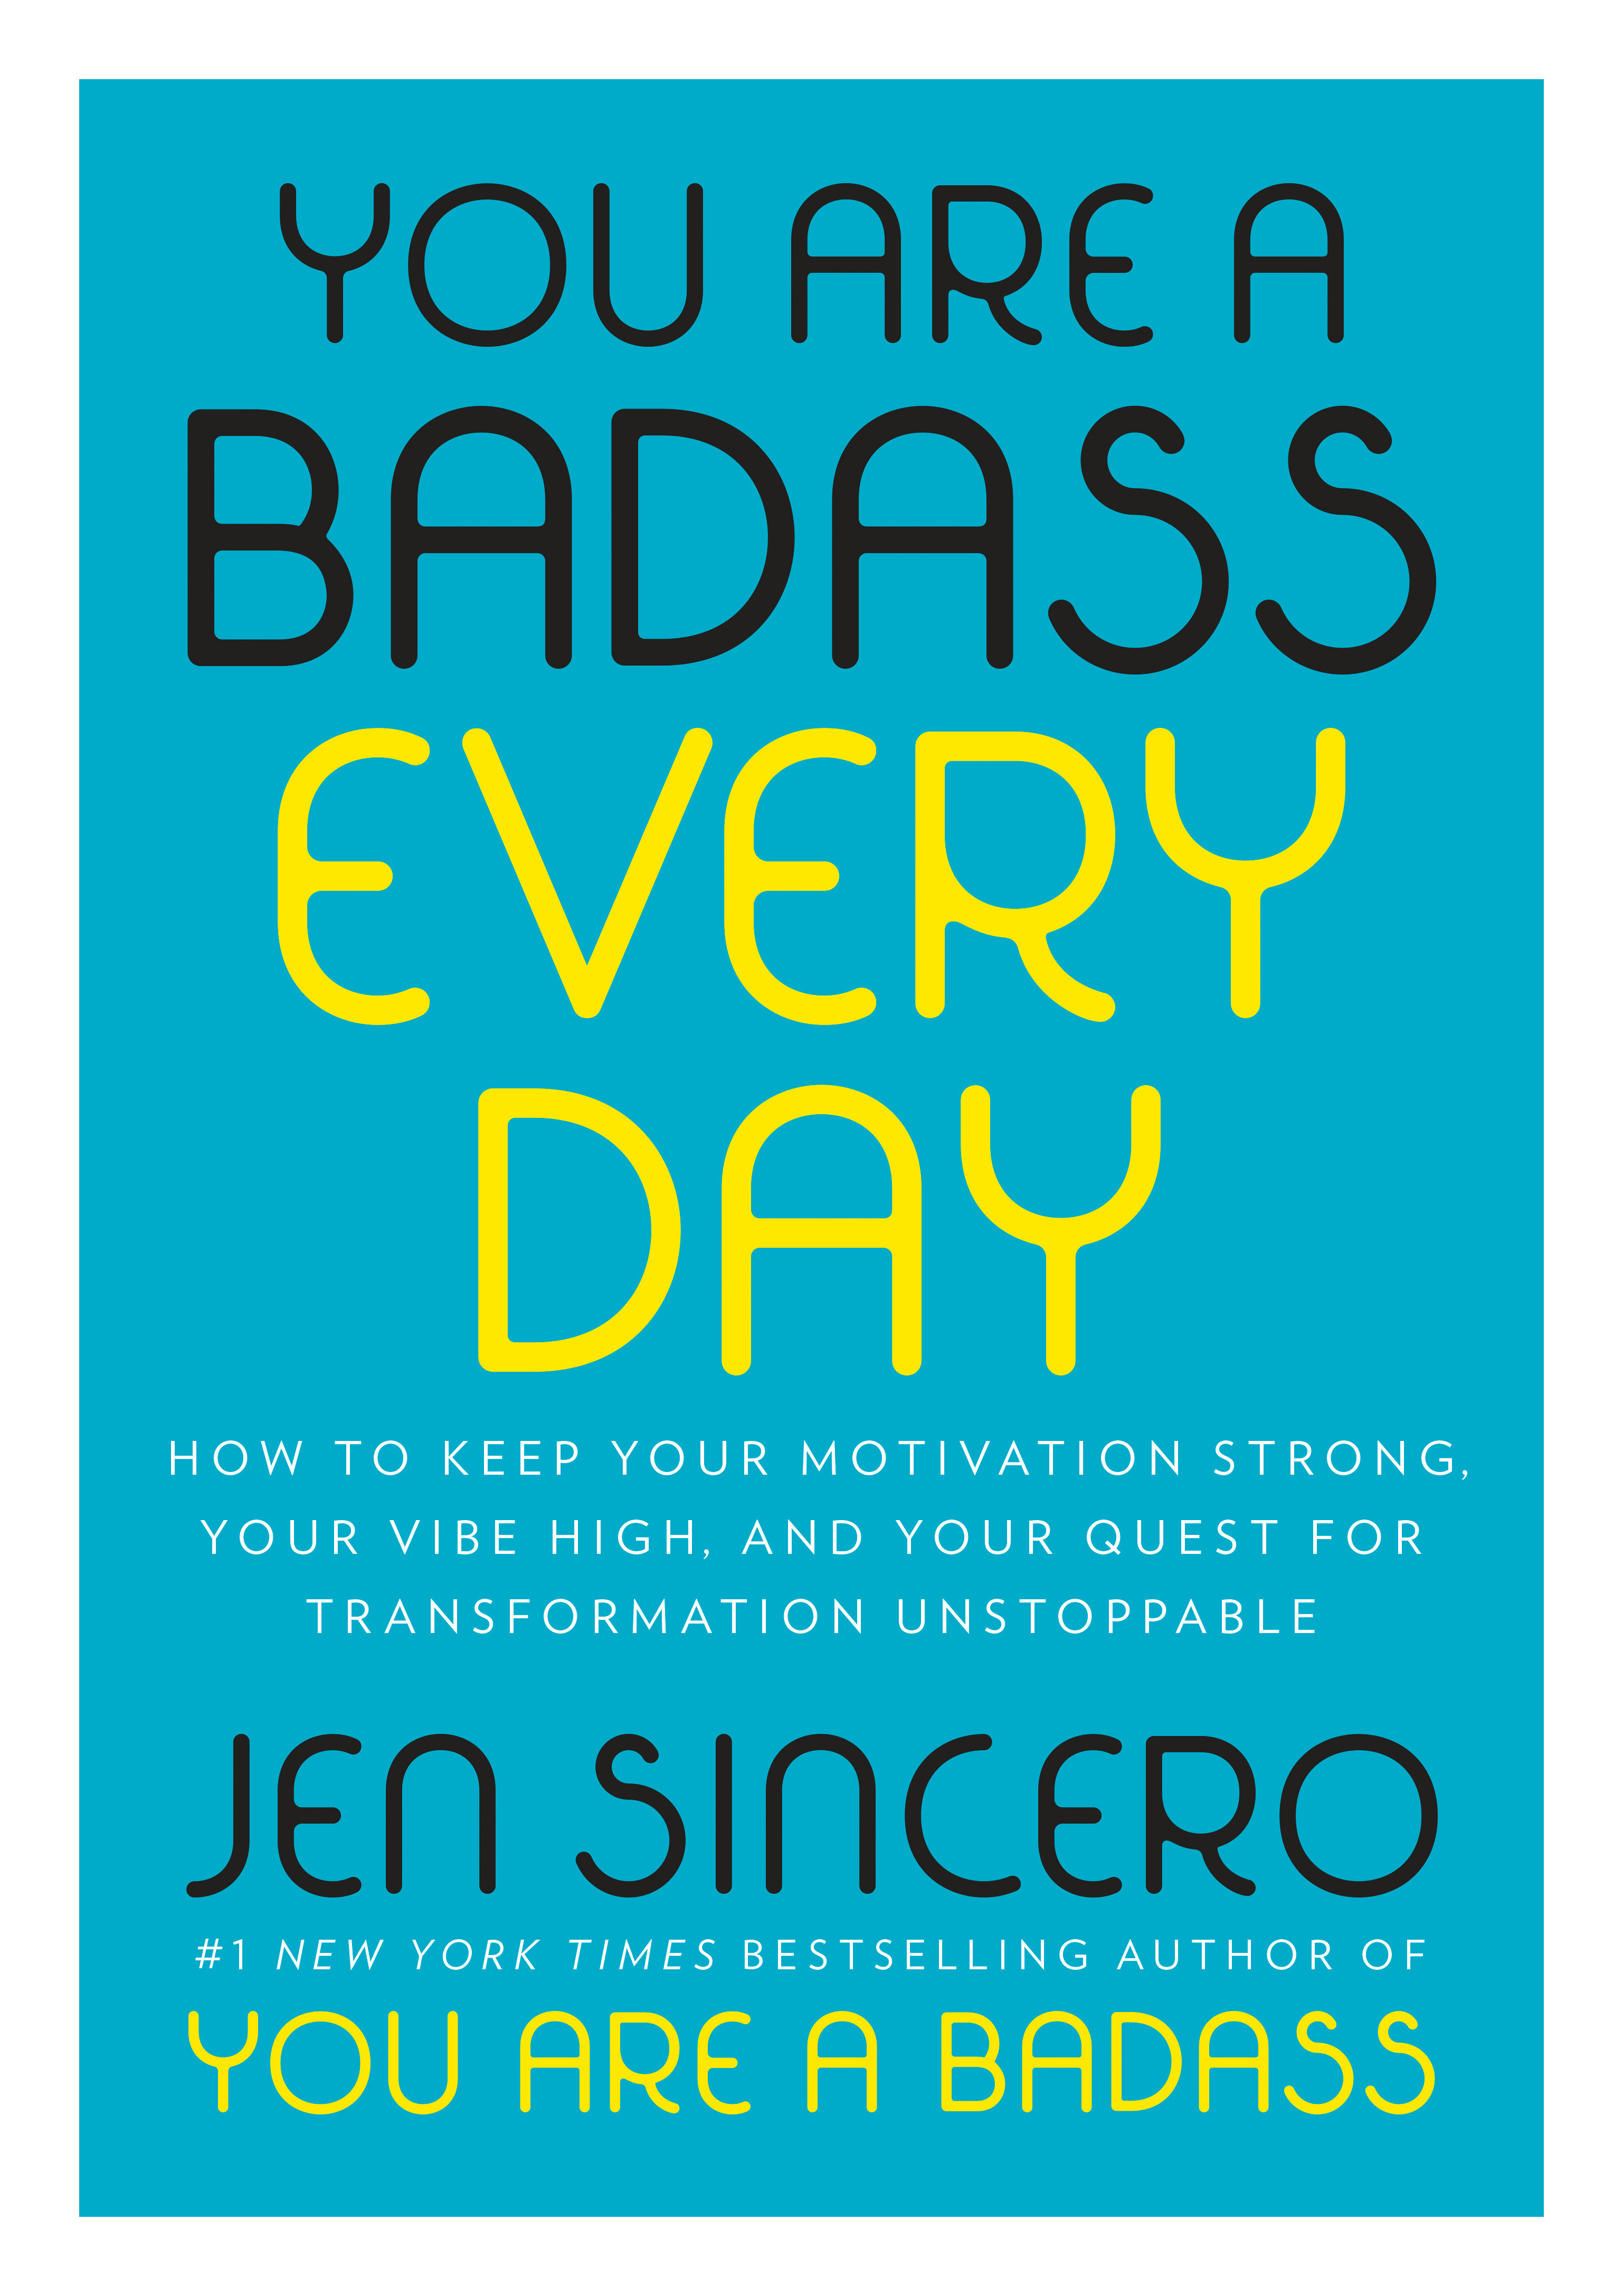 You Are a Badass Every Day How to Keep Your Motivation Strong, Your Vibe High, and Your Quest for Transformation Unstoppable